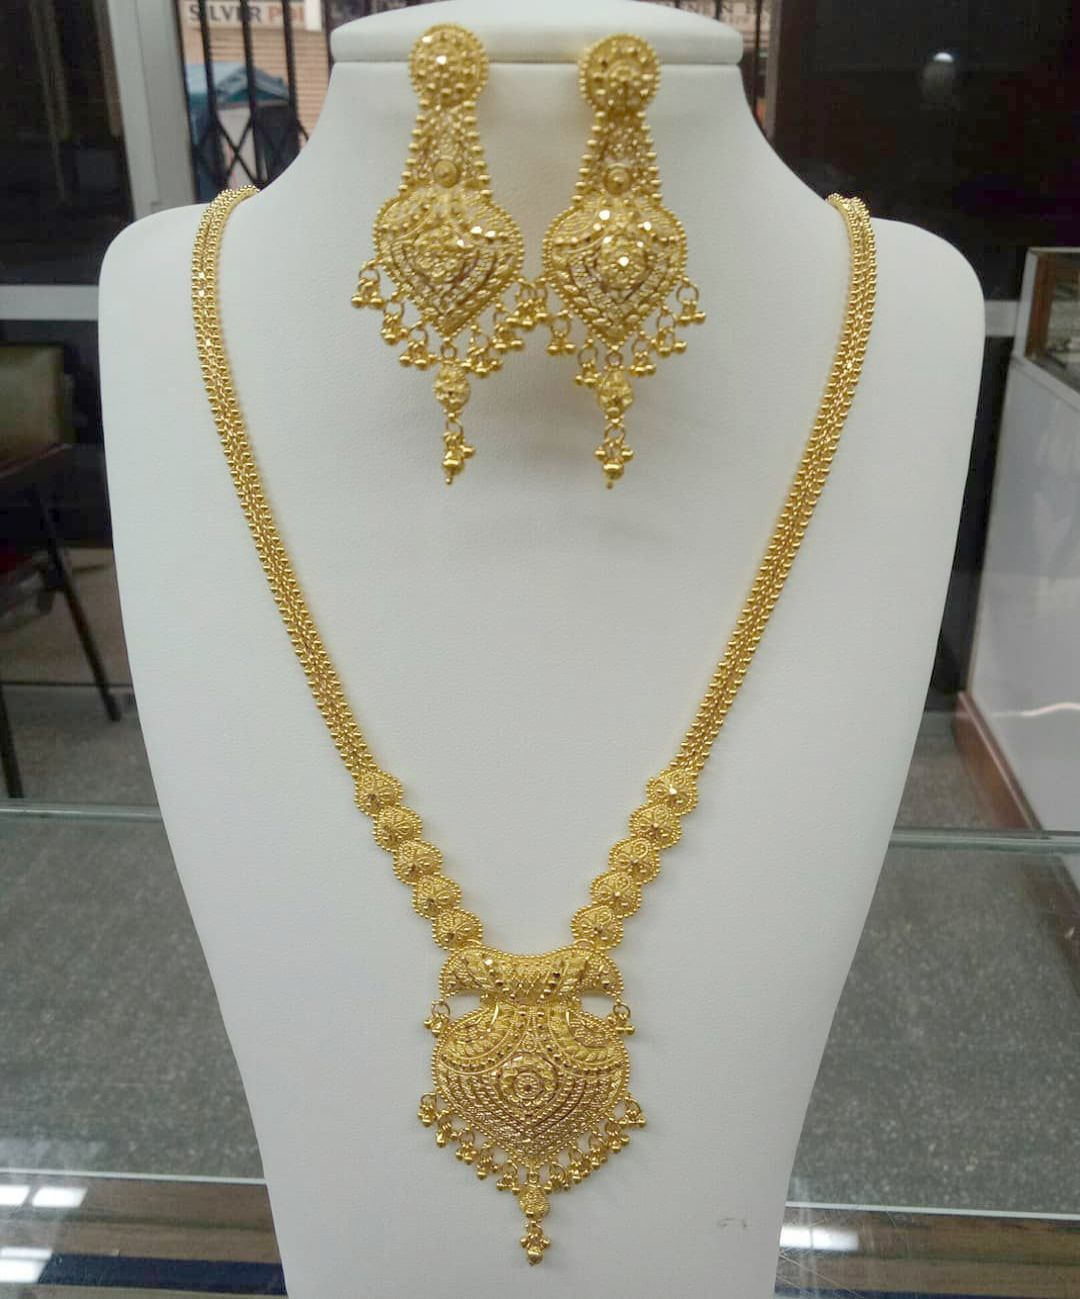 Jewellery Appraisal Our Jos Alukkas Jewellery Near Me Before Jewellery Online Ksa Bridal Gold Jewellery Bridal Gold Jewellery Designs Gold Necklace Designs